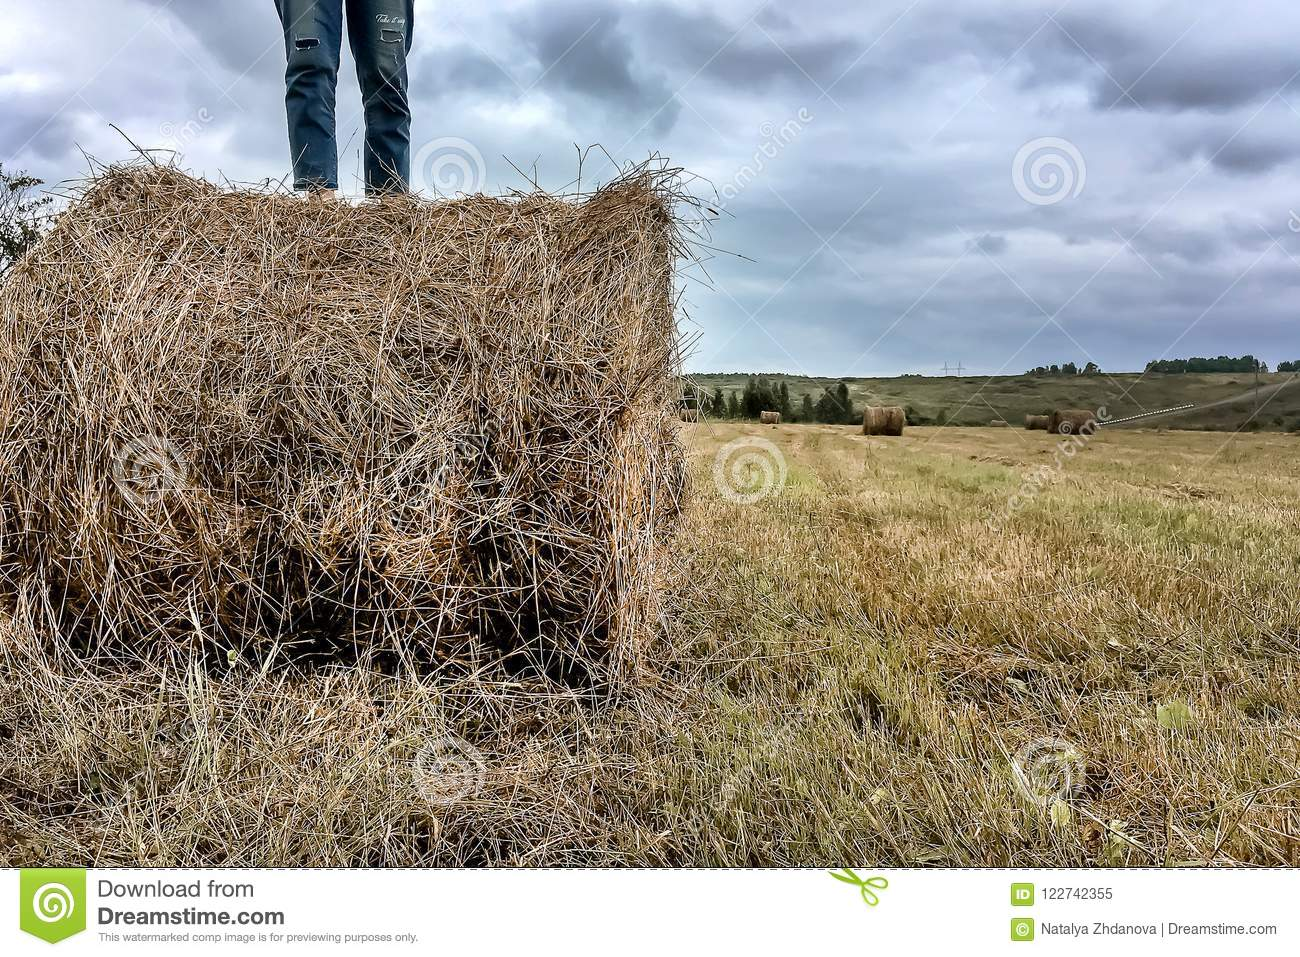 A man stands on a haystack